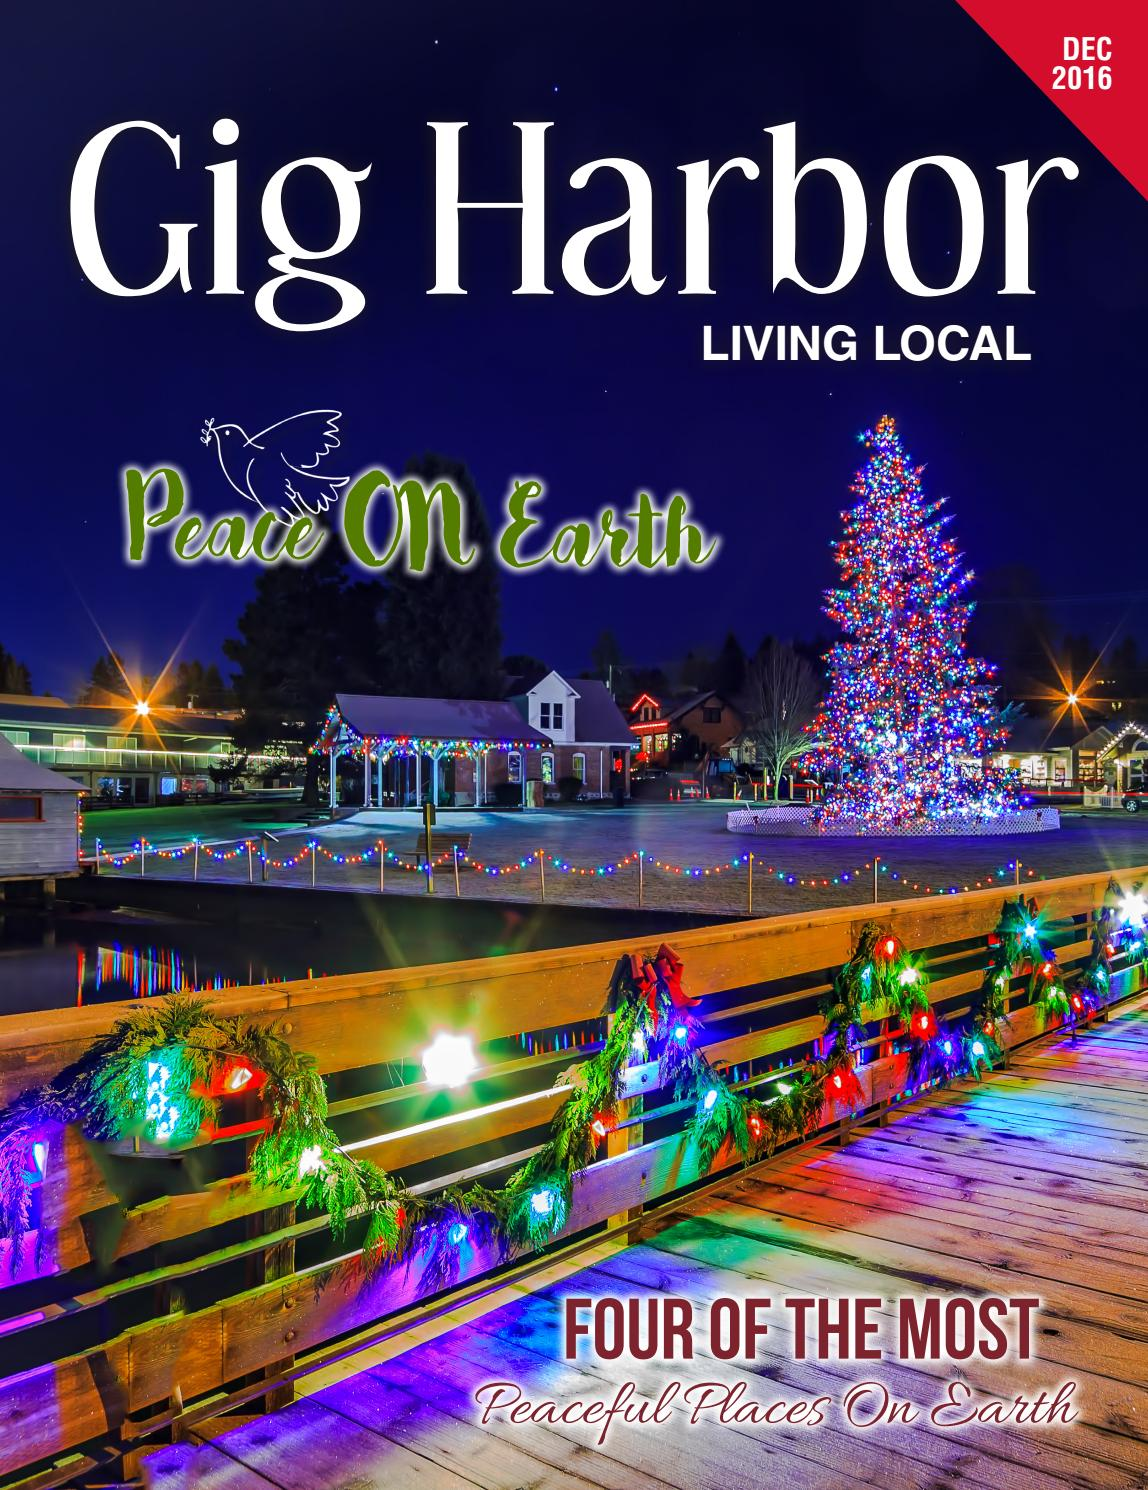 December 2016 Gig Harbor Living Local by Living Local 360